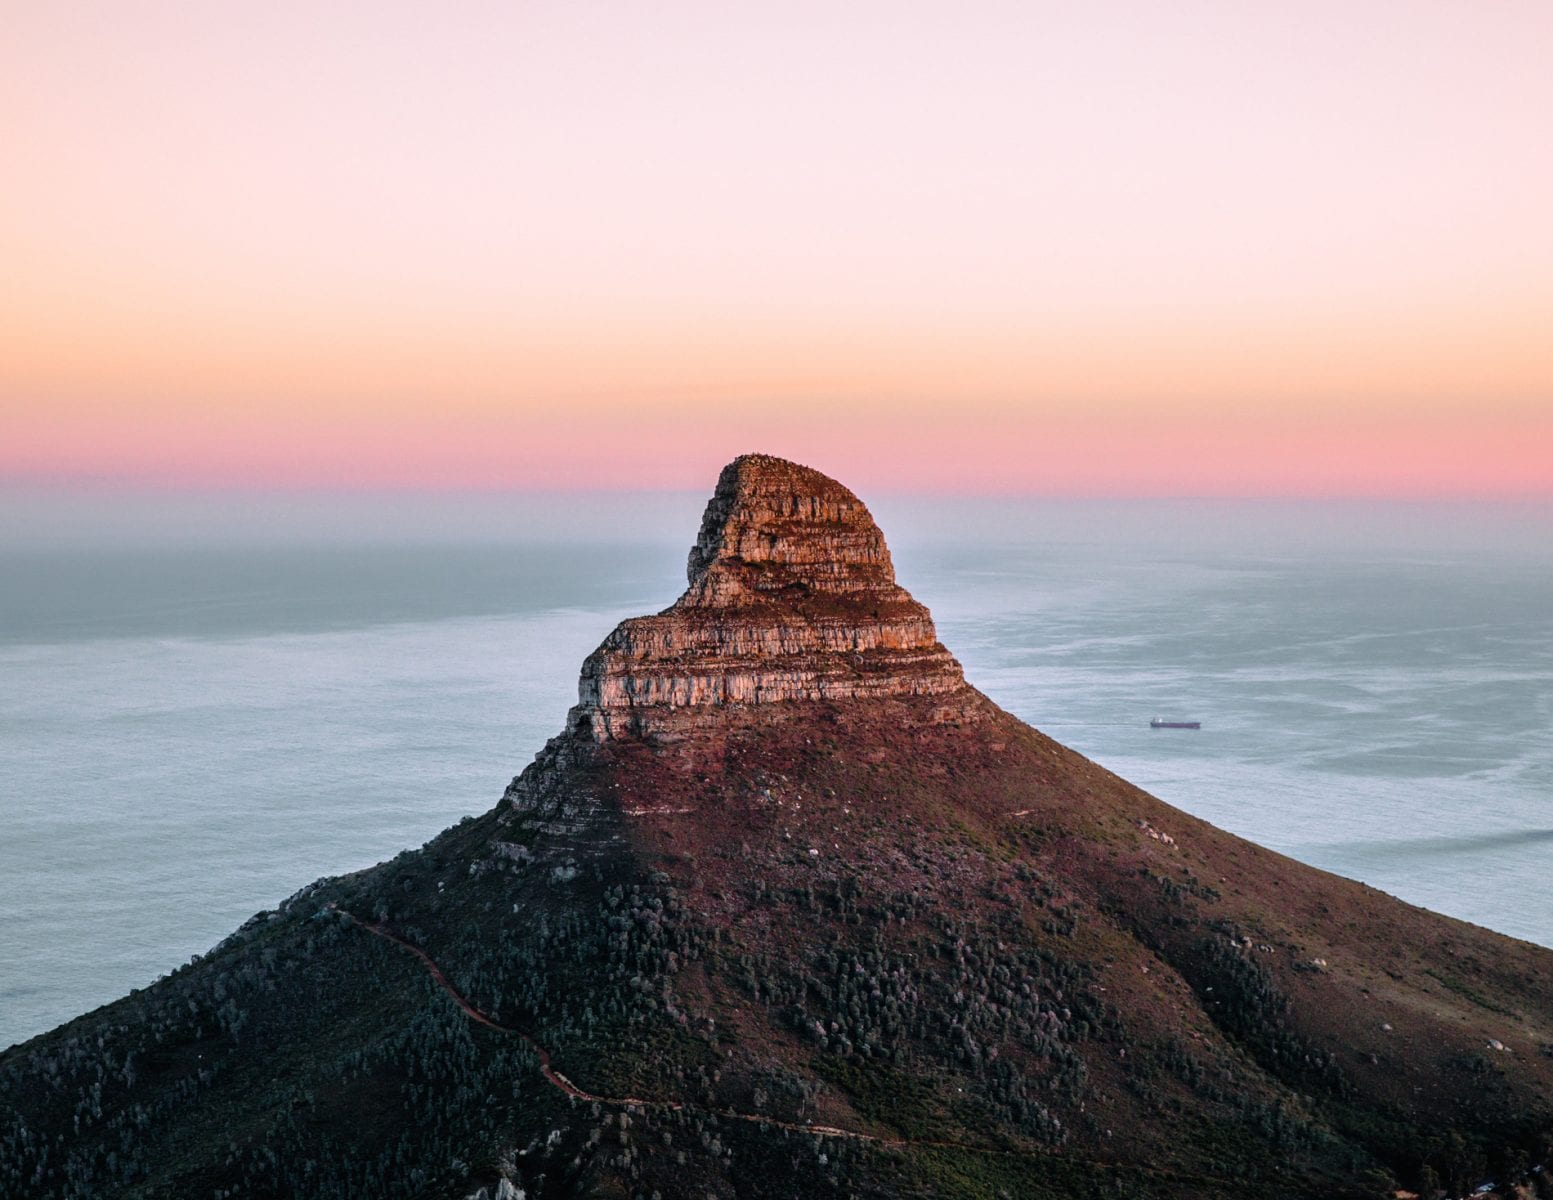 the top a a mountain on a landscape photograph by Andrew ross